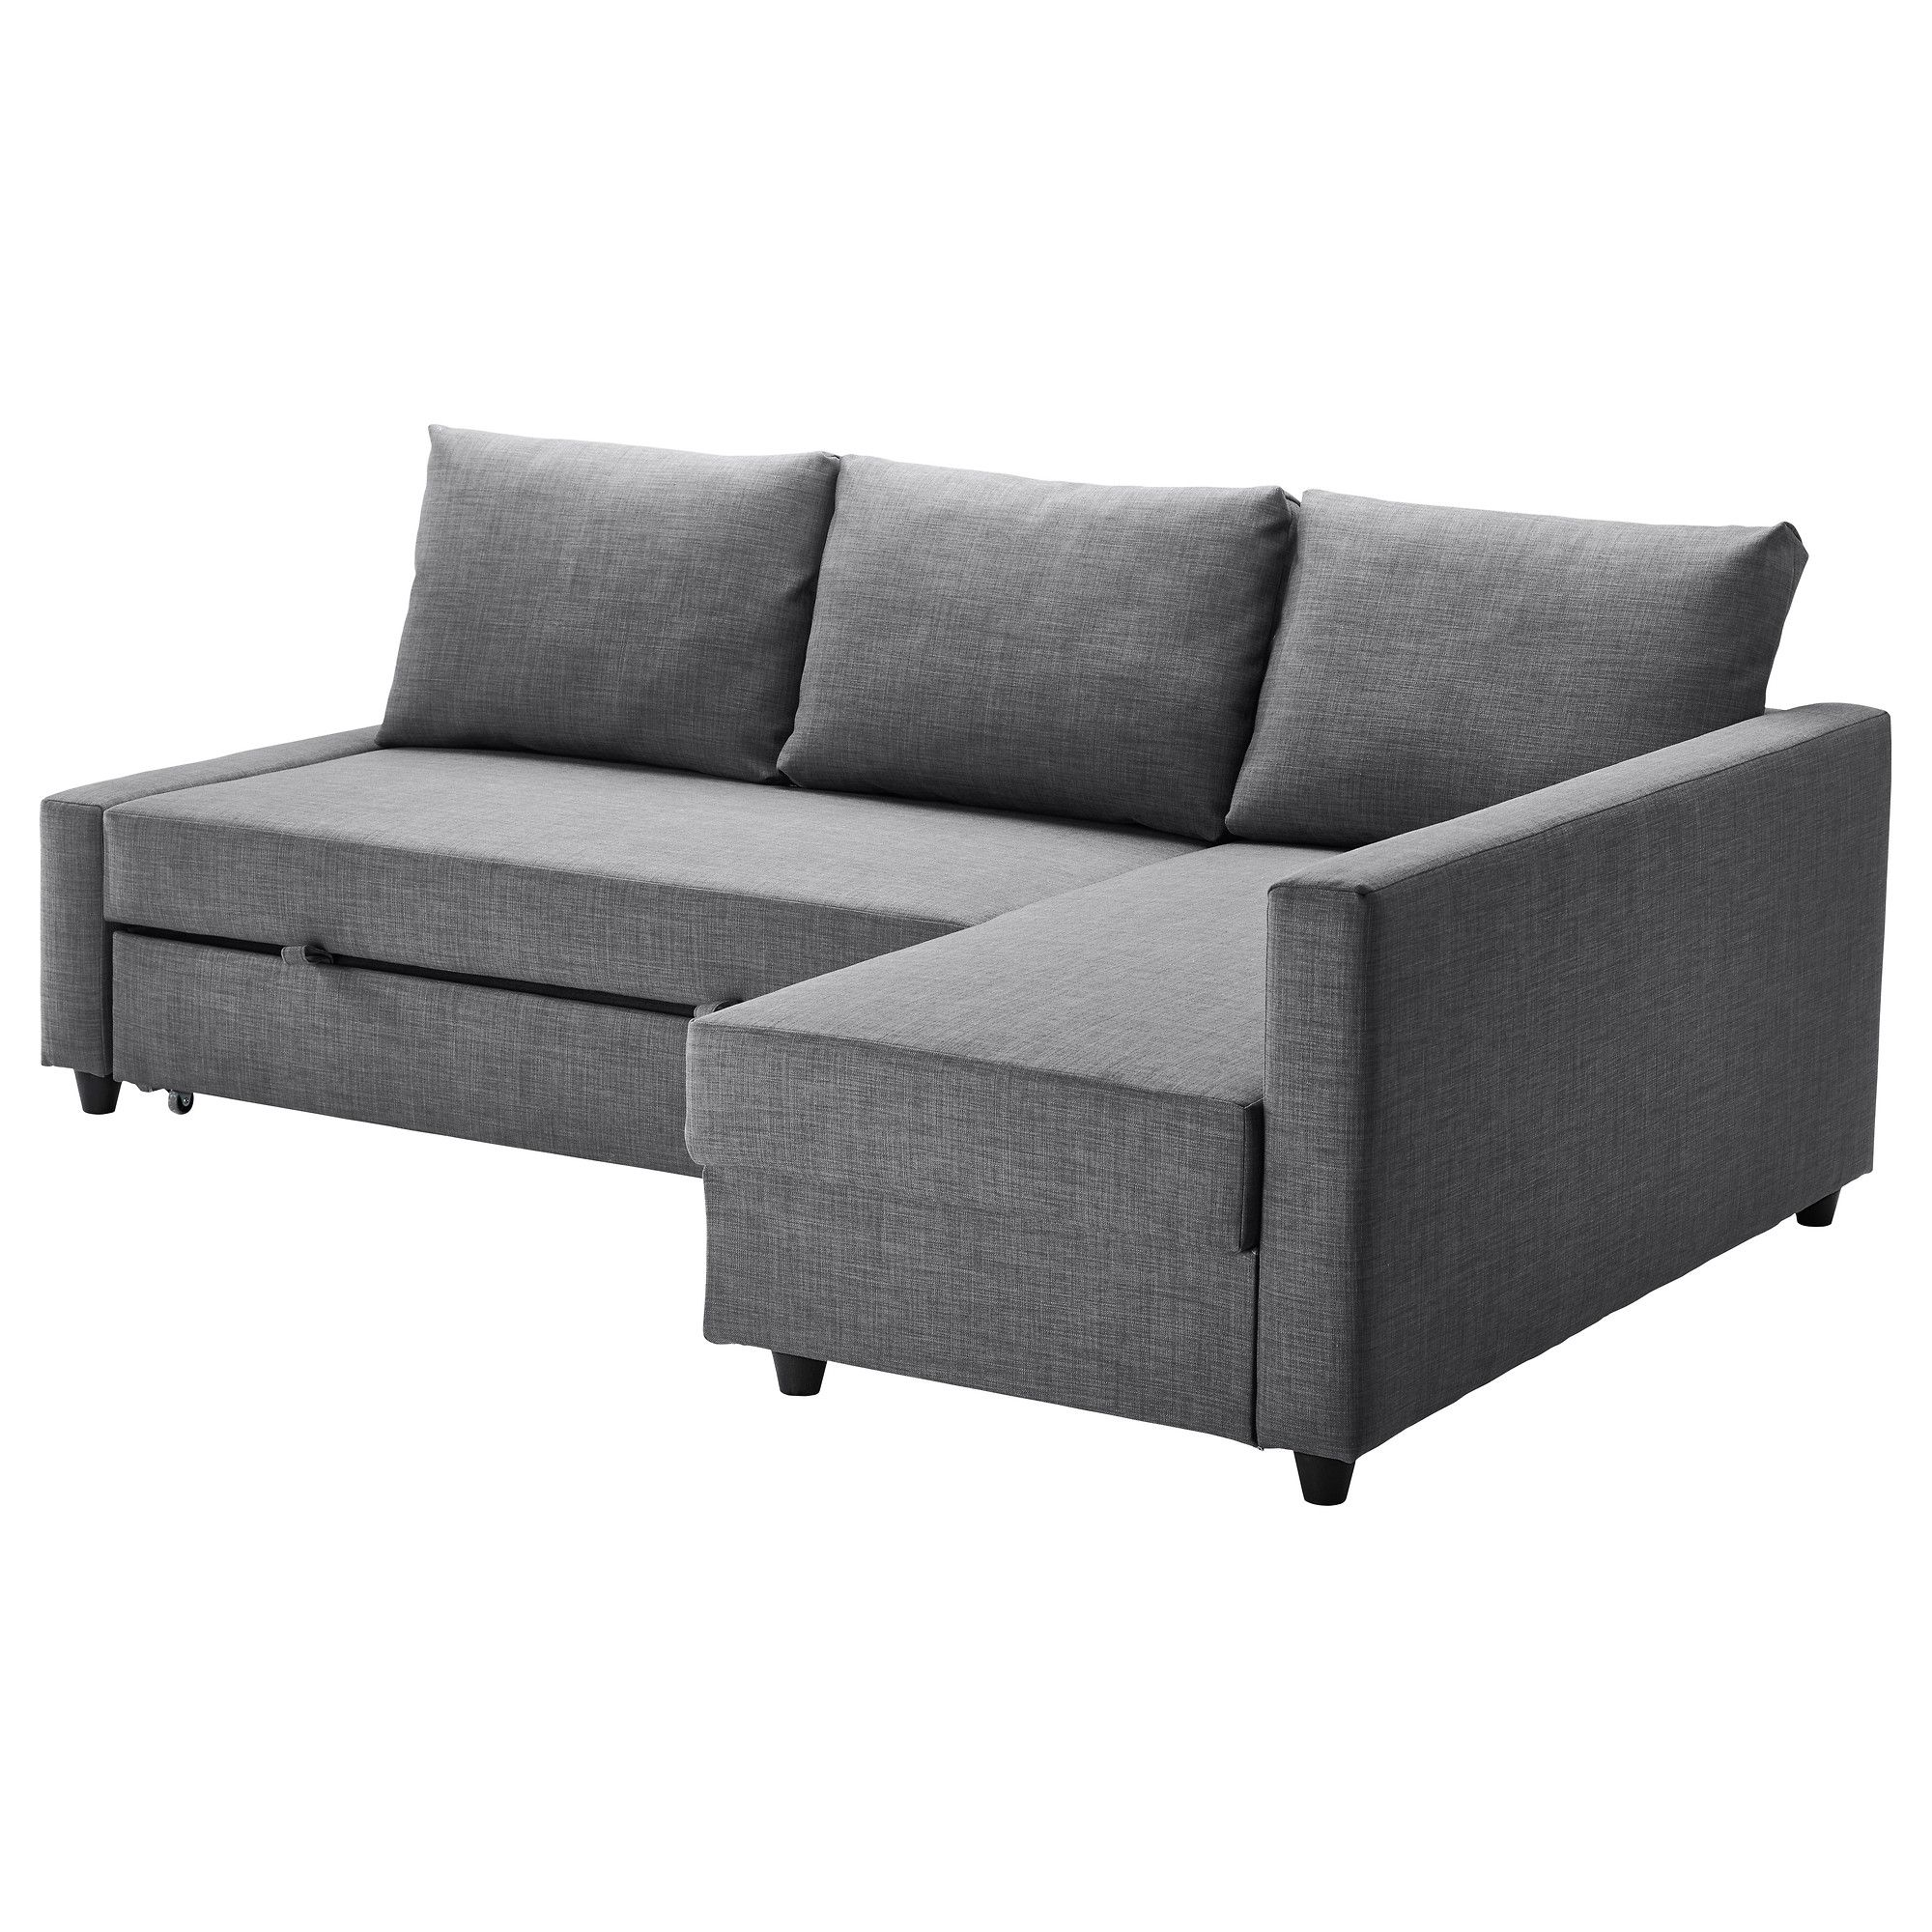 wayfair lowe sean sleeper furniture modular home ottoman pdx reviews sectional by catherine with grey chelsea